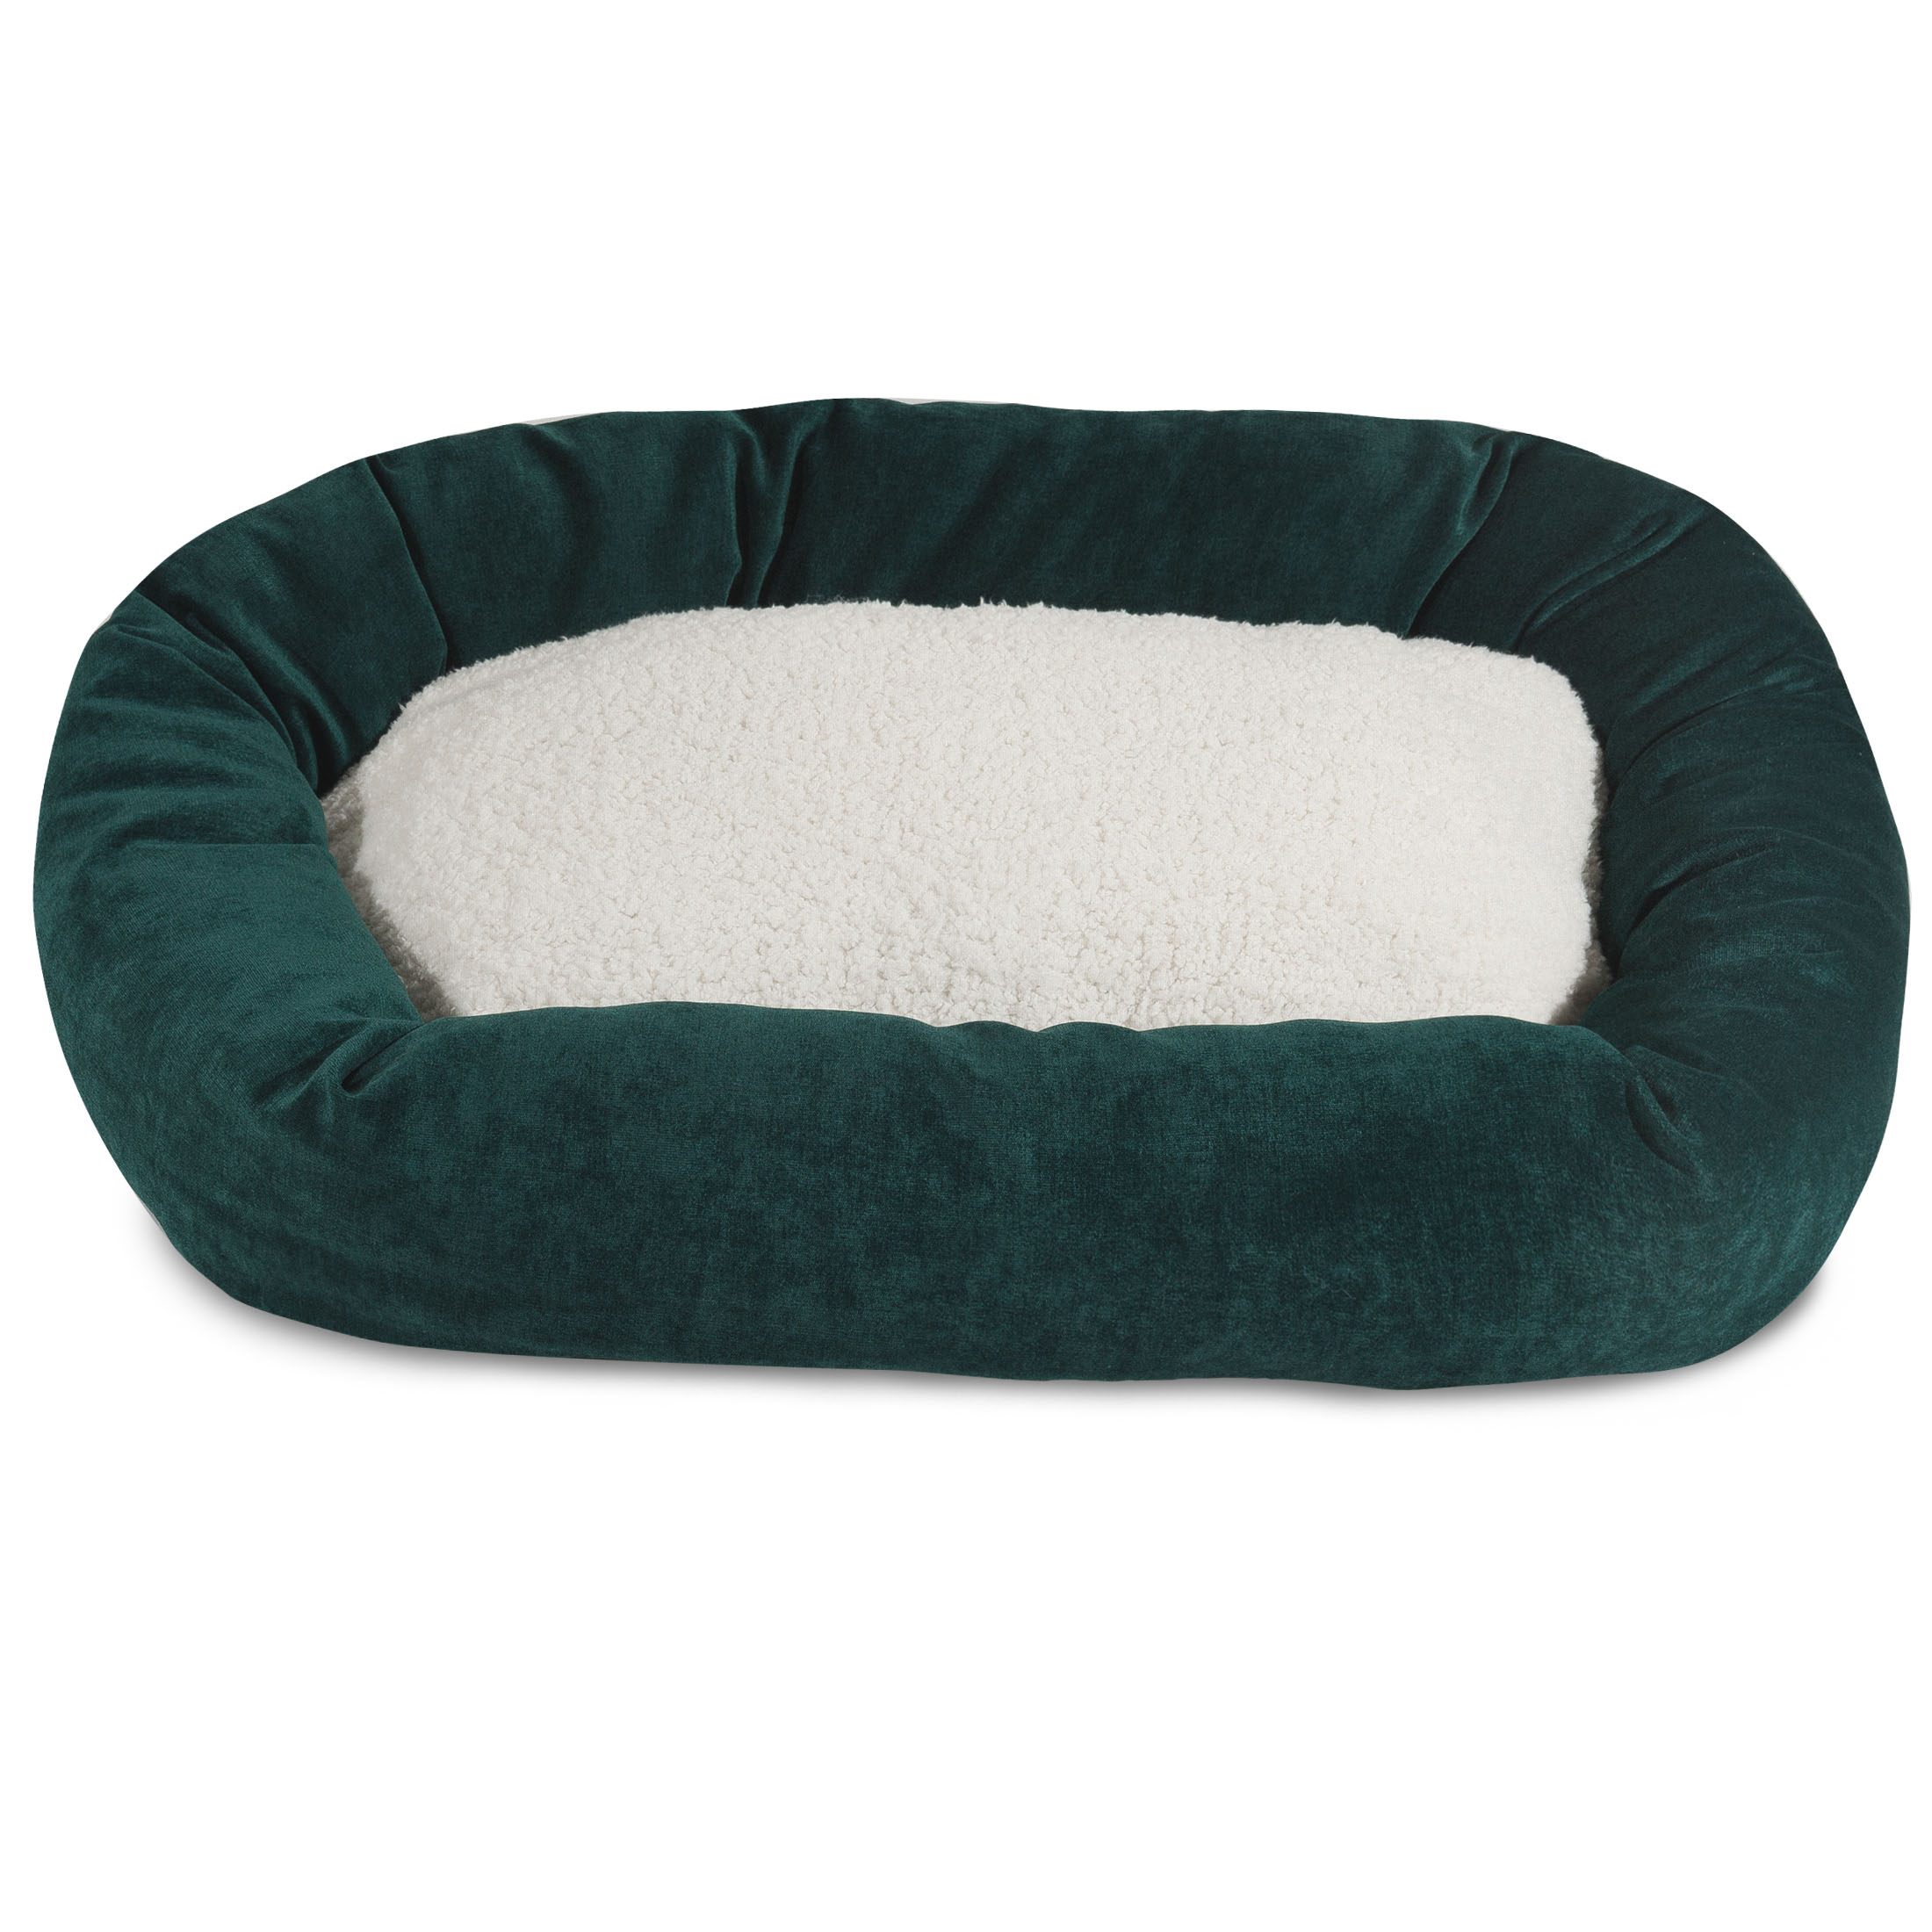 "Majestic Pet Villa Sherpa Bagel Dog Bed Machine Washable Marine Large 40"" x 29"" x 9"""